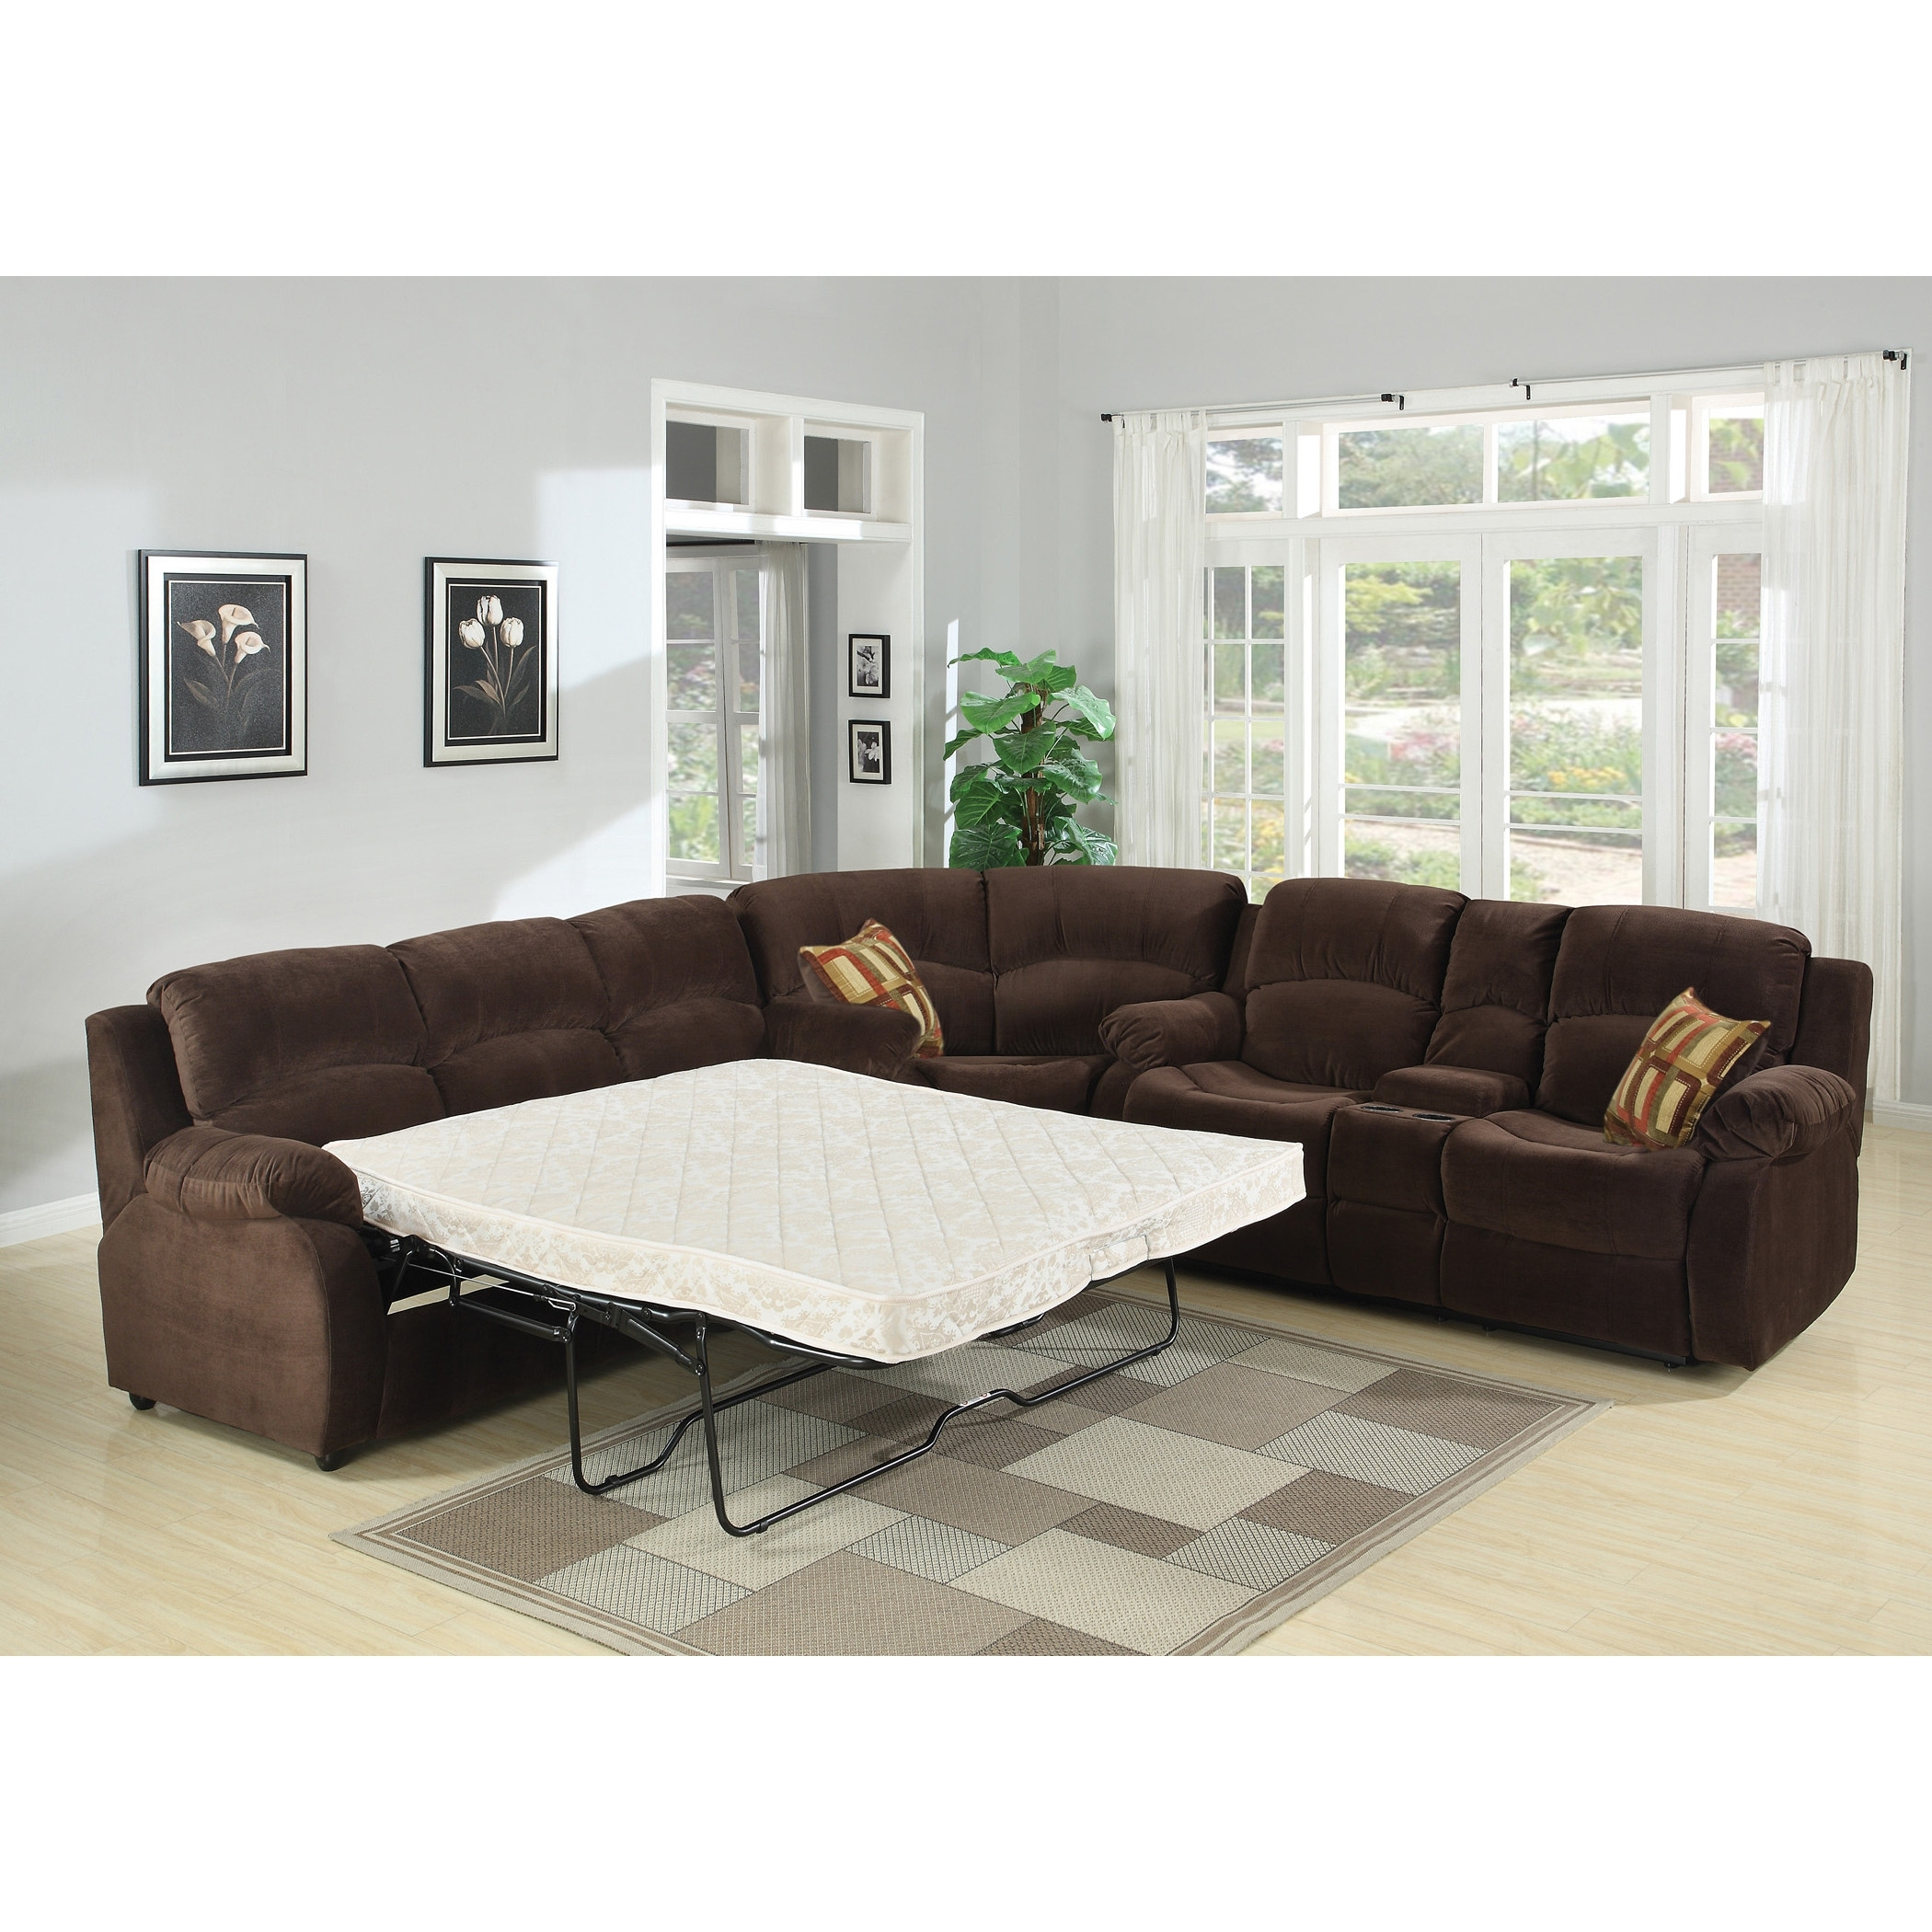 Sofa : Magnificent Sectional Sofa Queen Bed Great Sleeper Sectionals Inside Adjustable Sectional Sofas With Queen Bed (View 10 of 10)